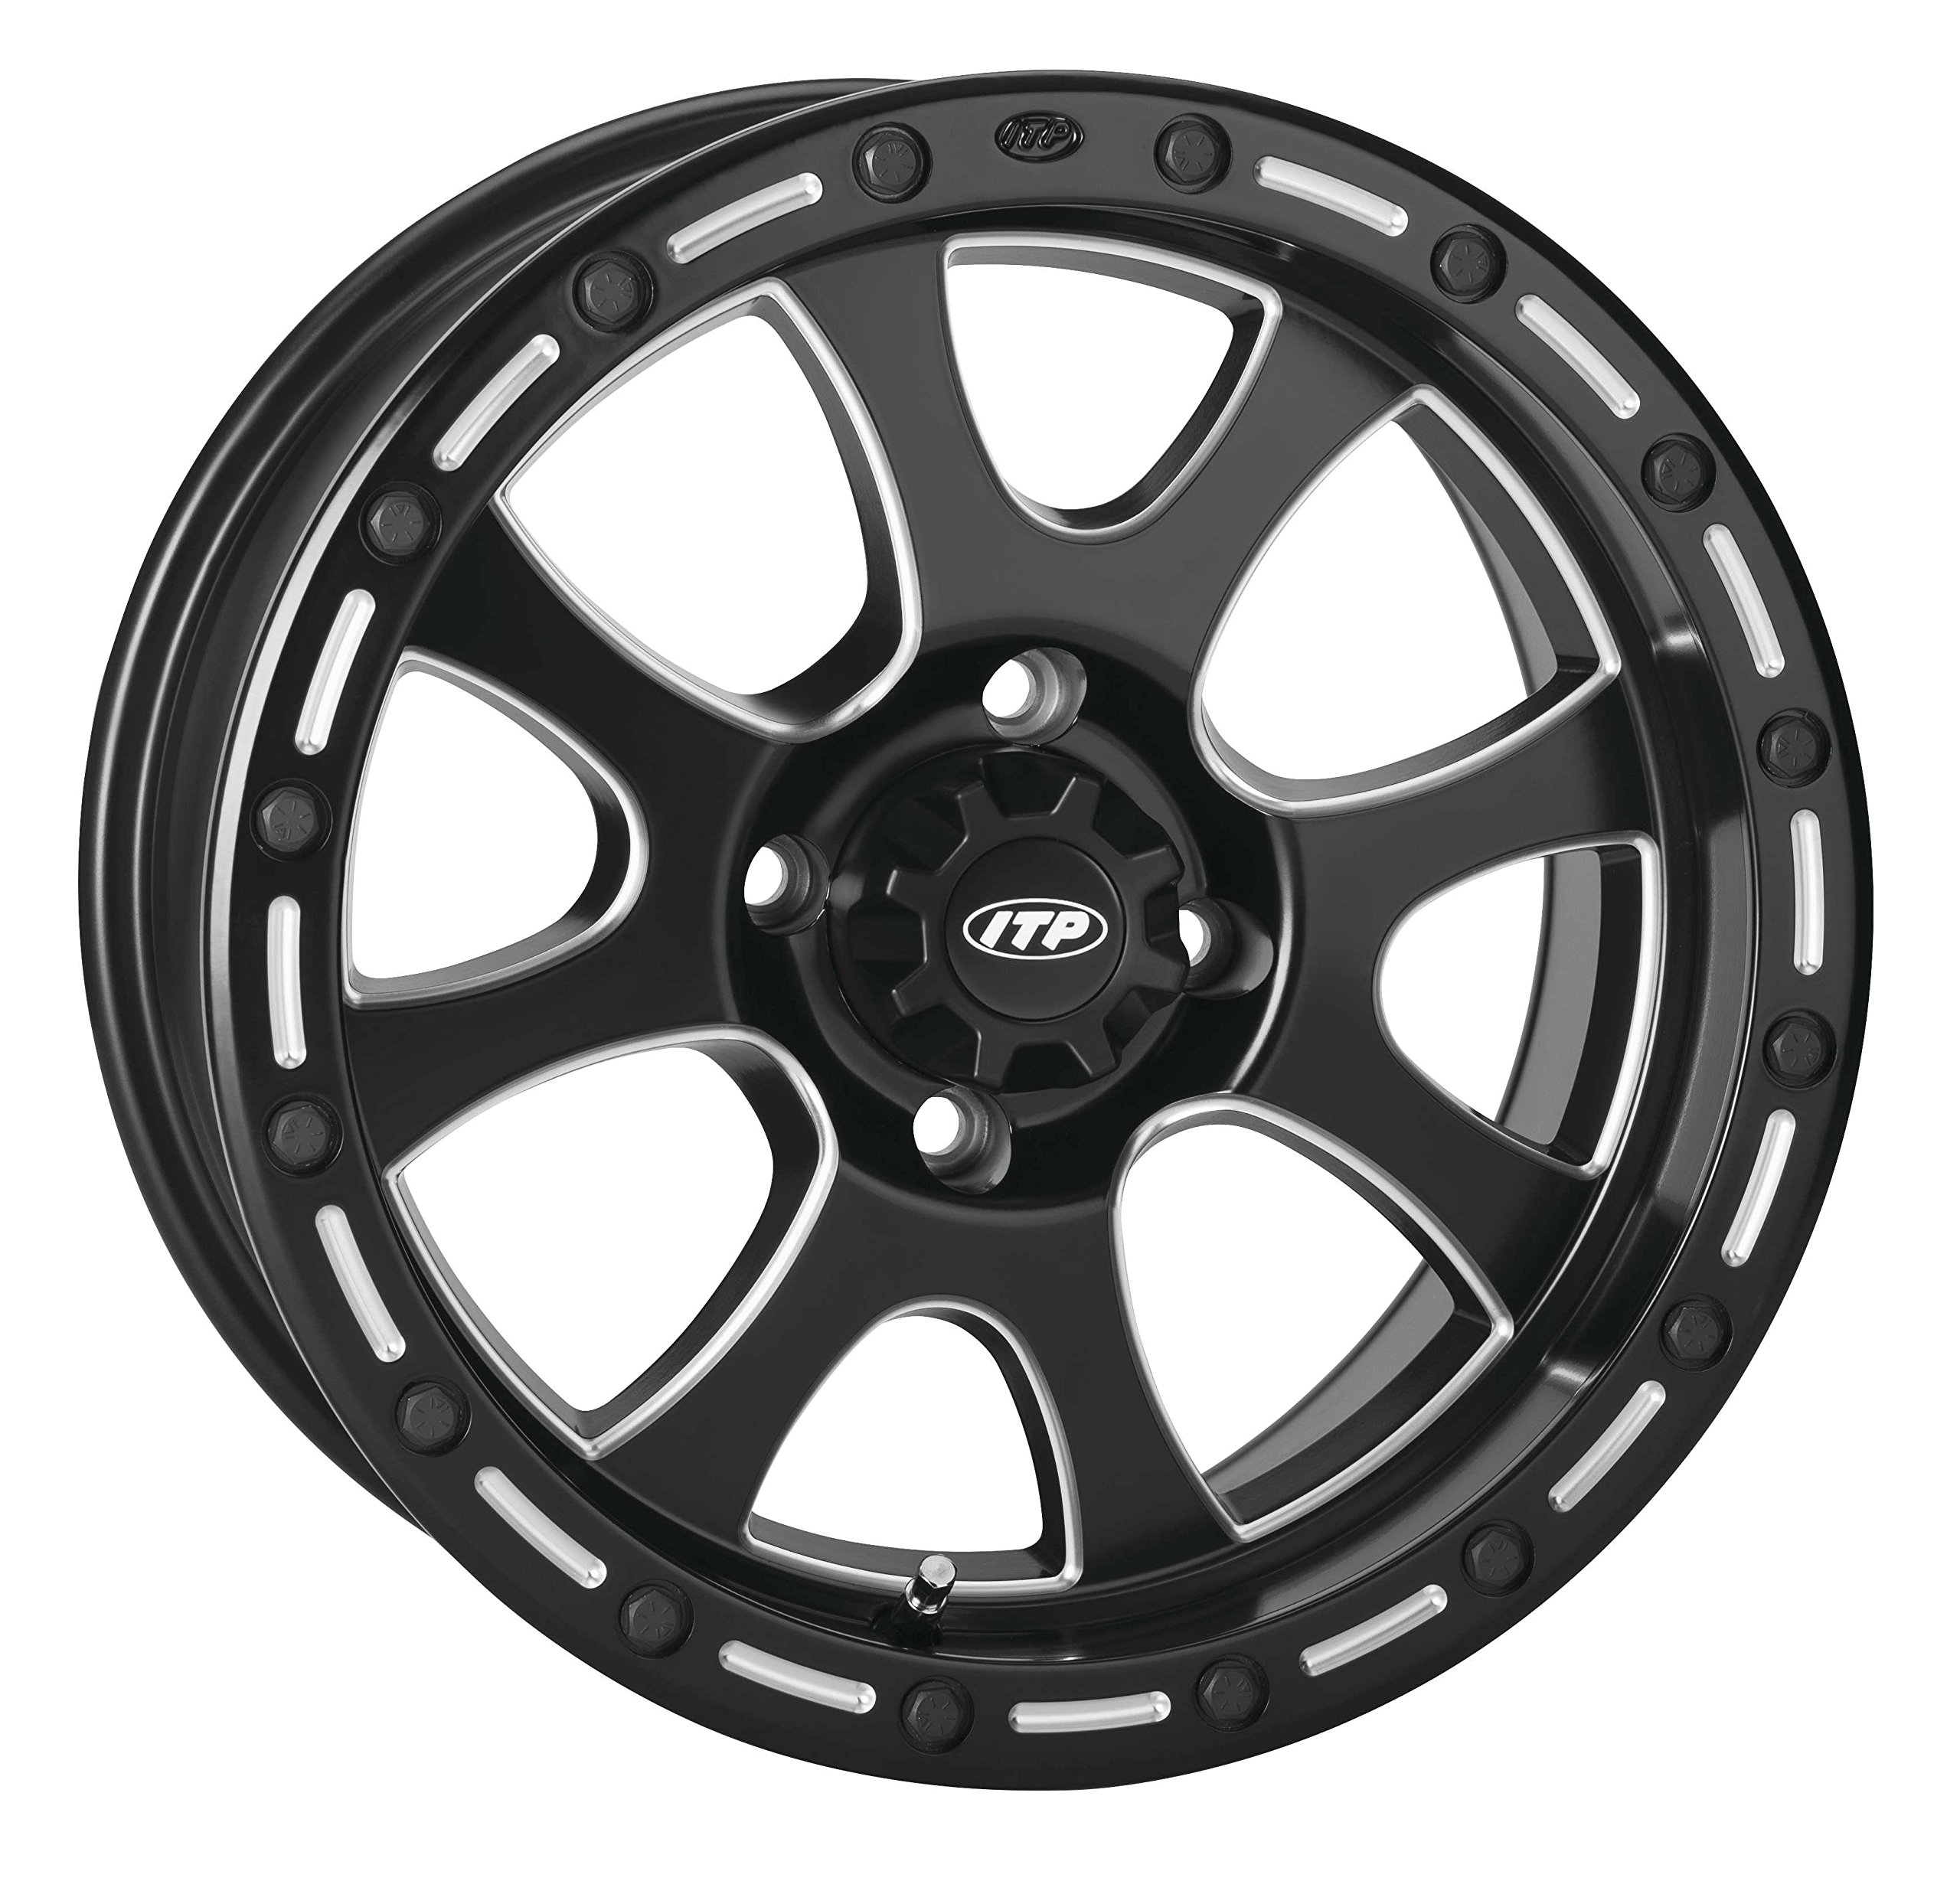 ITP 14TS110BX Tsunami Simulated Bead Lock Wheel - 14x7 - 5+2 - 4/110, Bolt Pattern: 4/110, Rim Offset: 5+2, Wheel Rim Size: 14x7, Color: Black/Machined, Position: Front/Rear